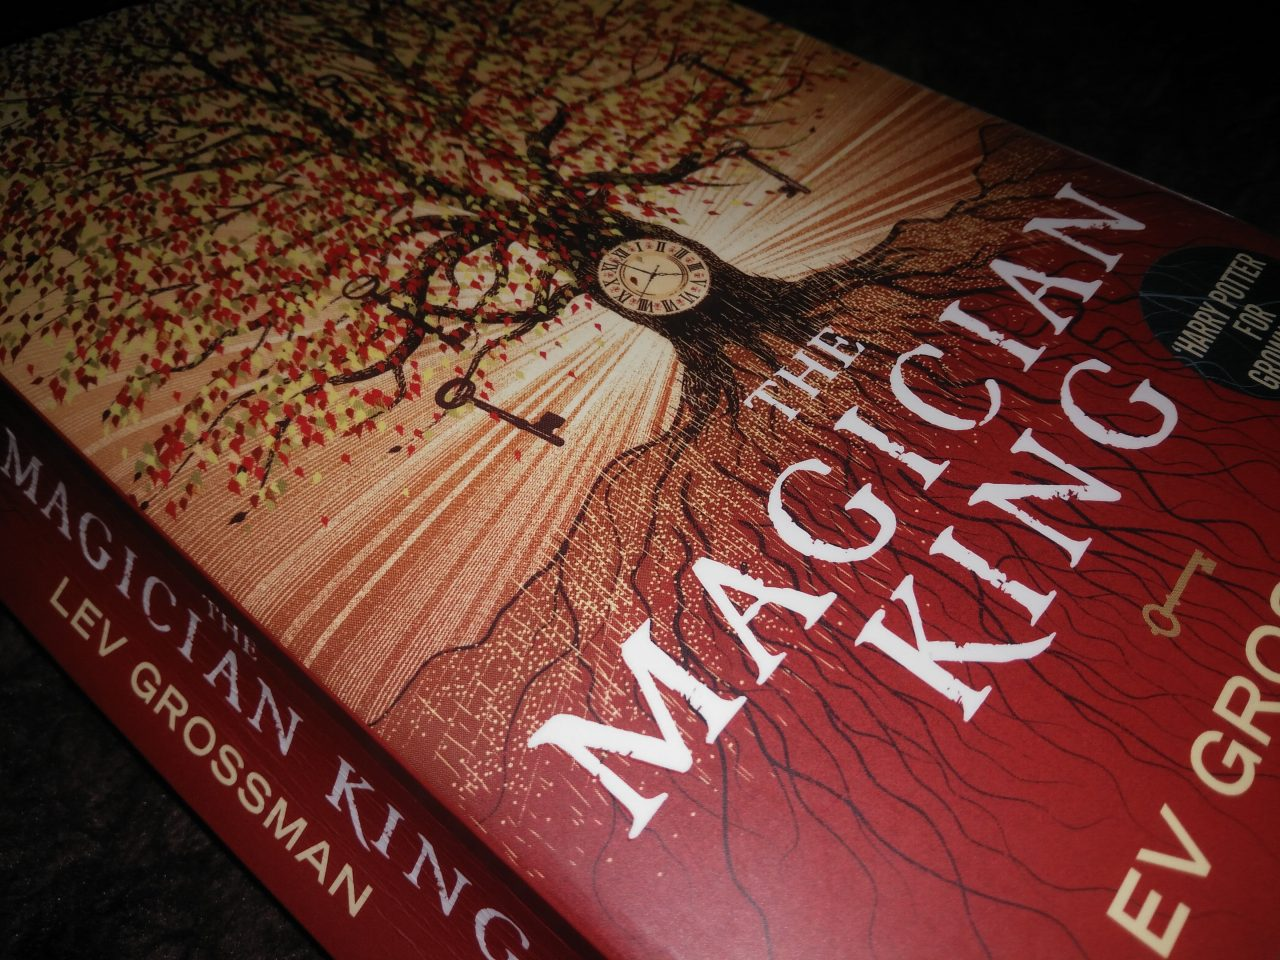 The Magician King by Lev Grossman